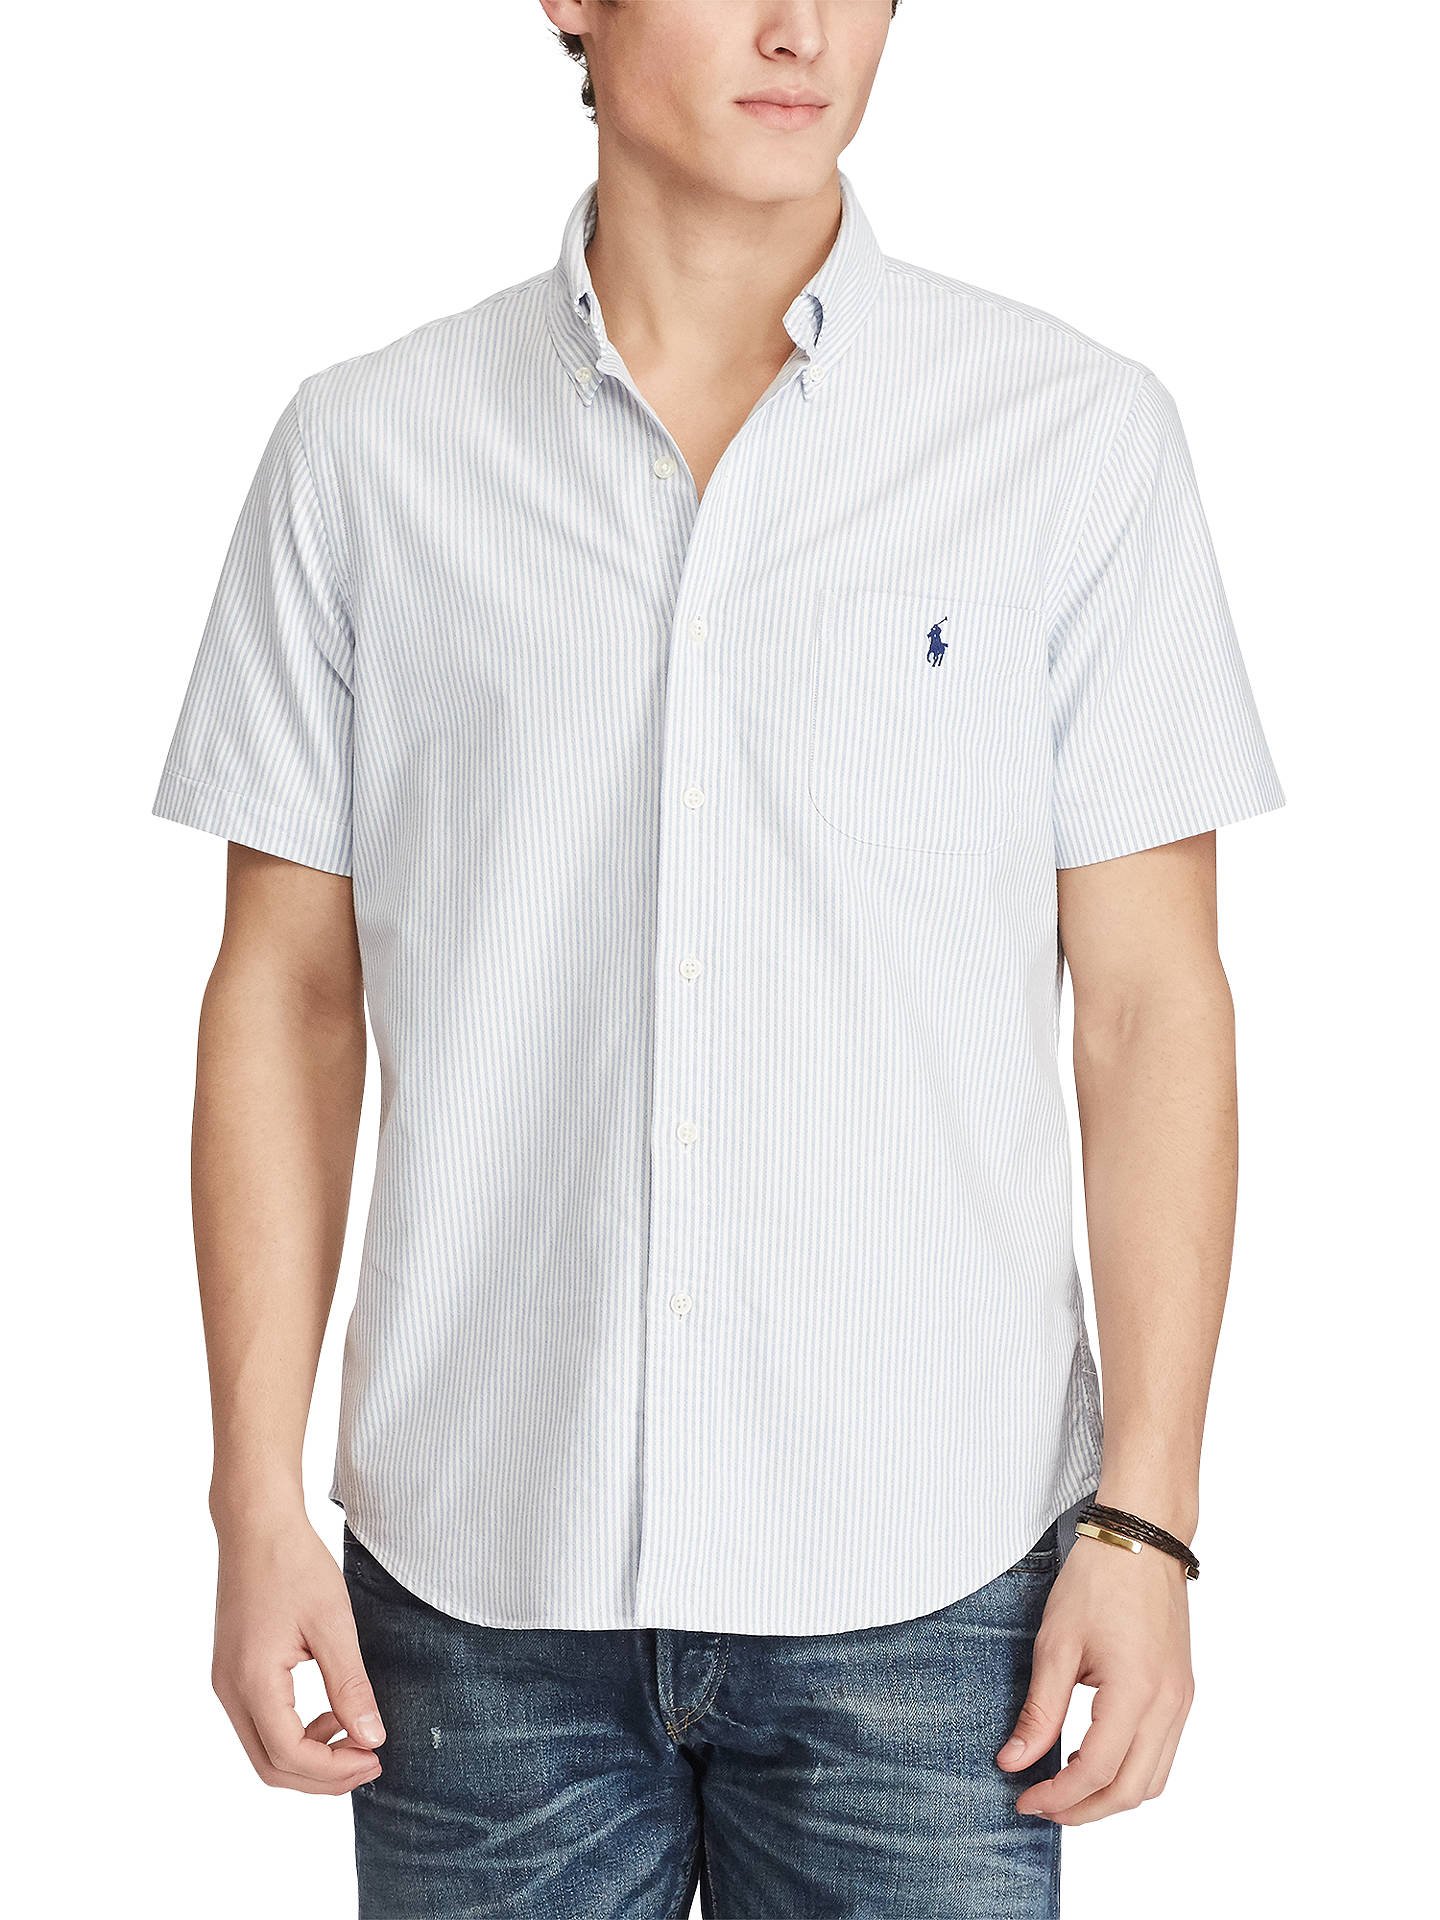 6c7b667bf Polo Ralph Lauren Standard Fit Short Sleeve Striped Oxford Shirt ...